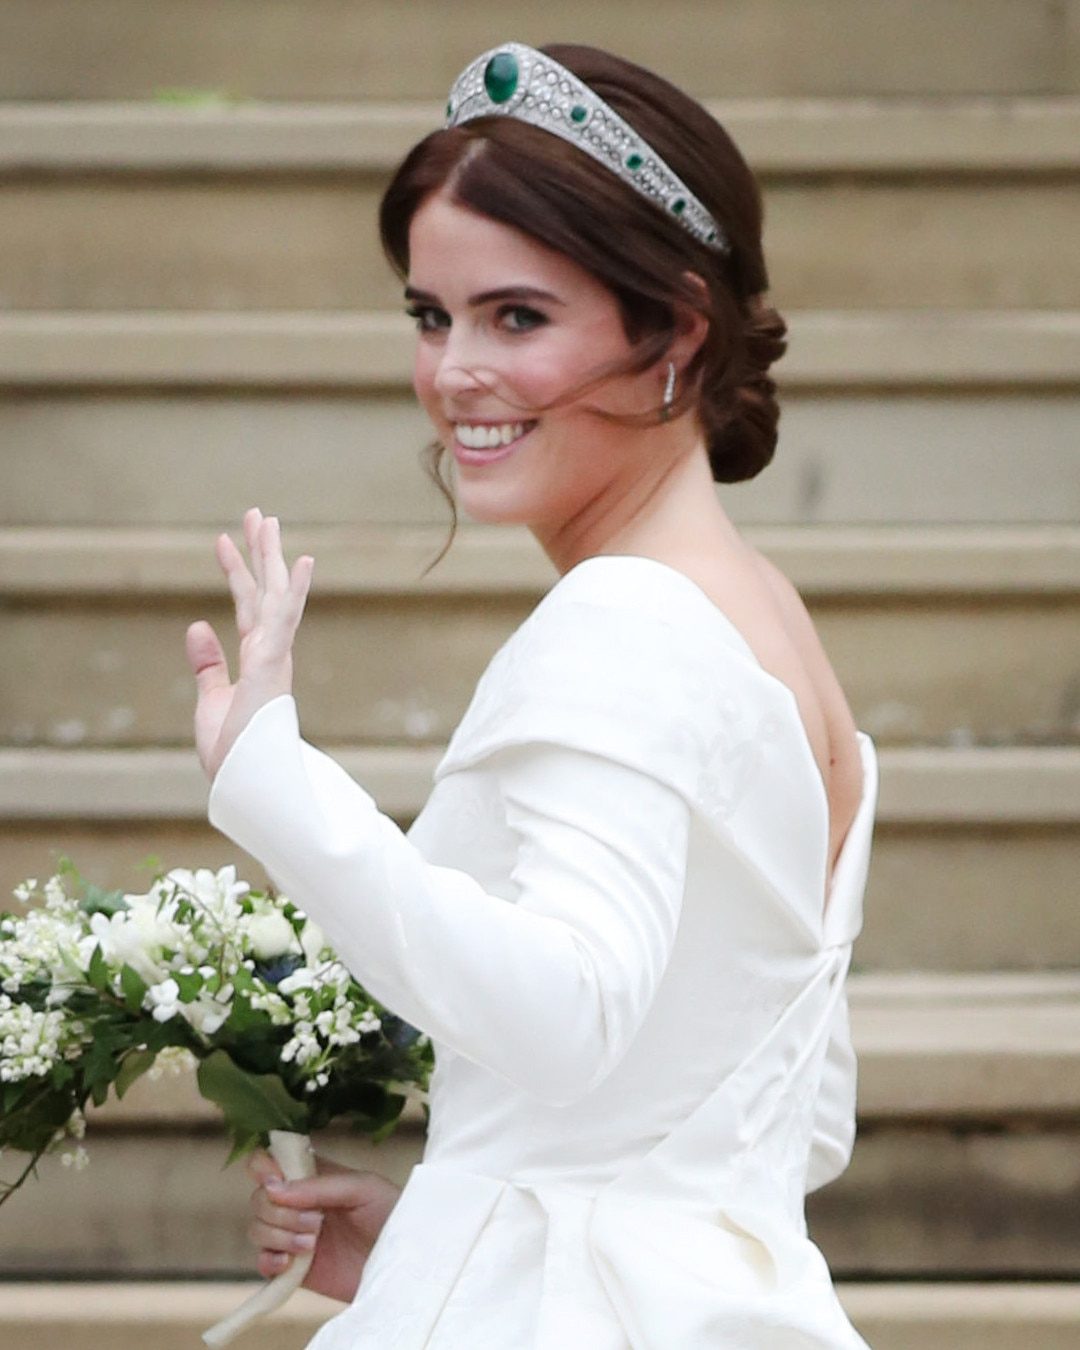 Princess Eugenie -  In October, Princess Eugenie married Jack Brooksbank in a  stunning wedding dress  designed by Peter Pilotto and Christopher De Vos, who founded the British based label Peter Pilotto.